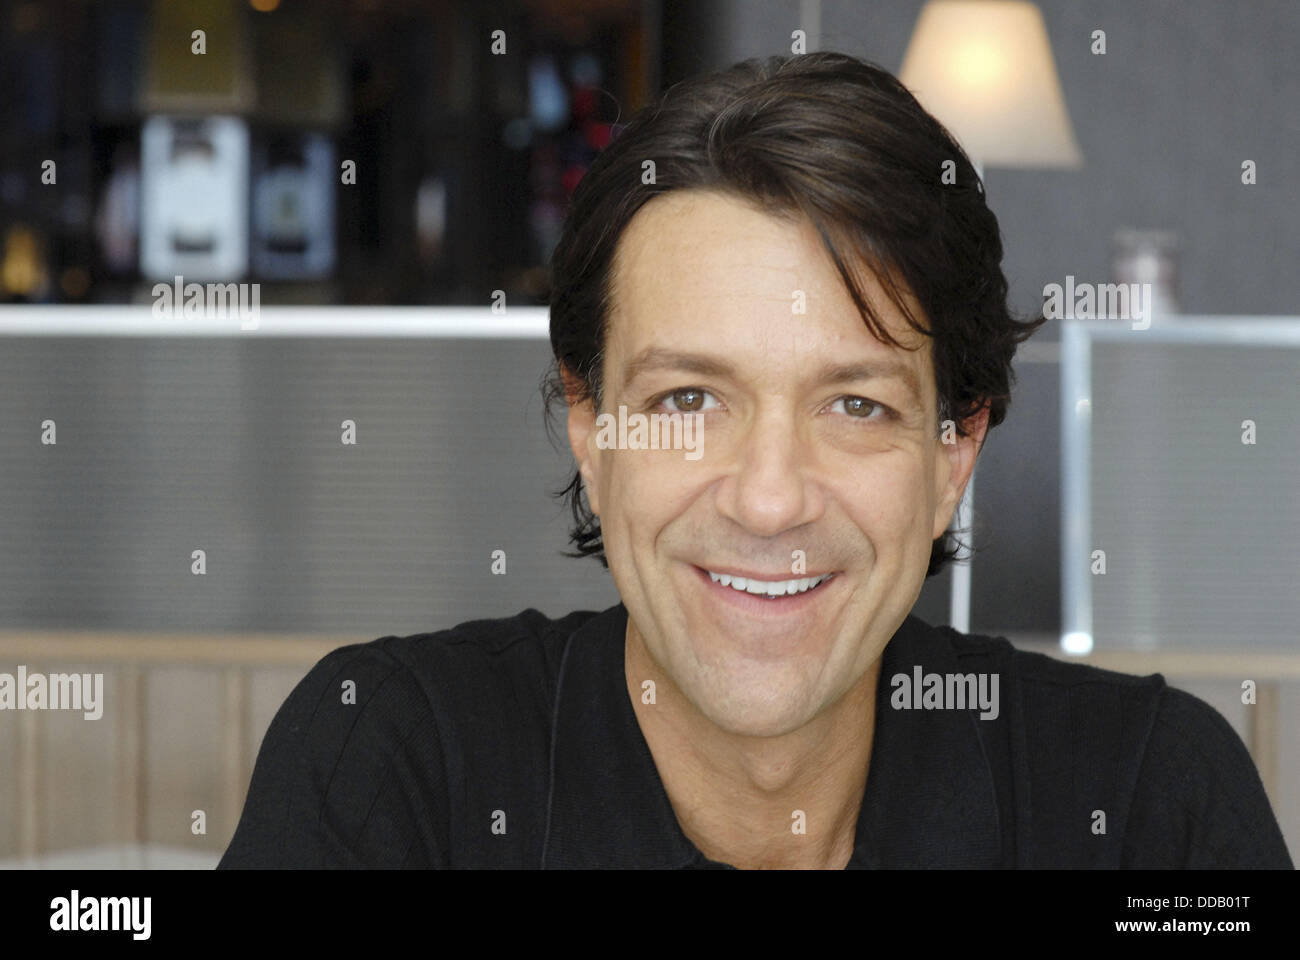 40-45 year old white male, seated in a bar/café - Stock Image